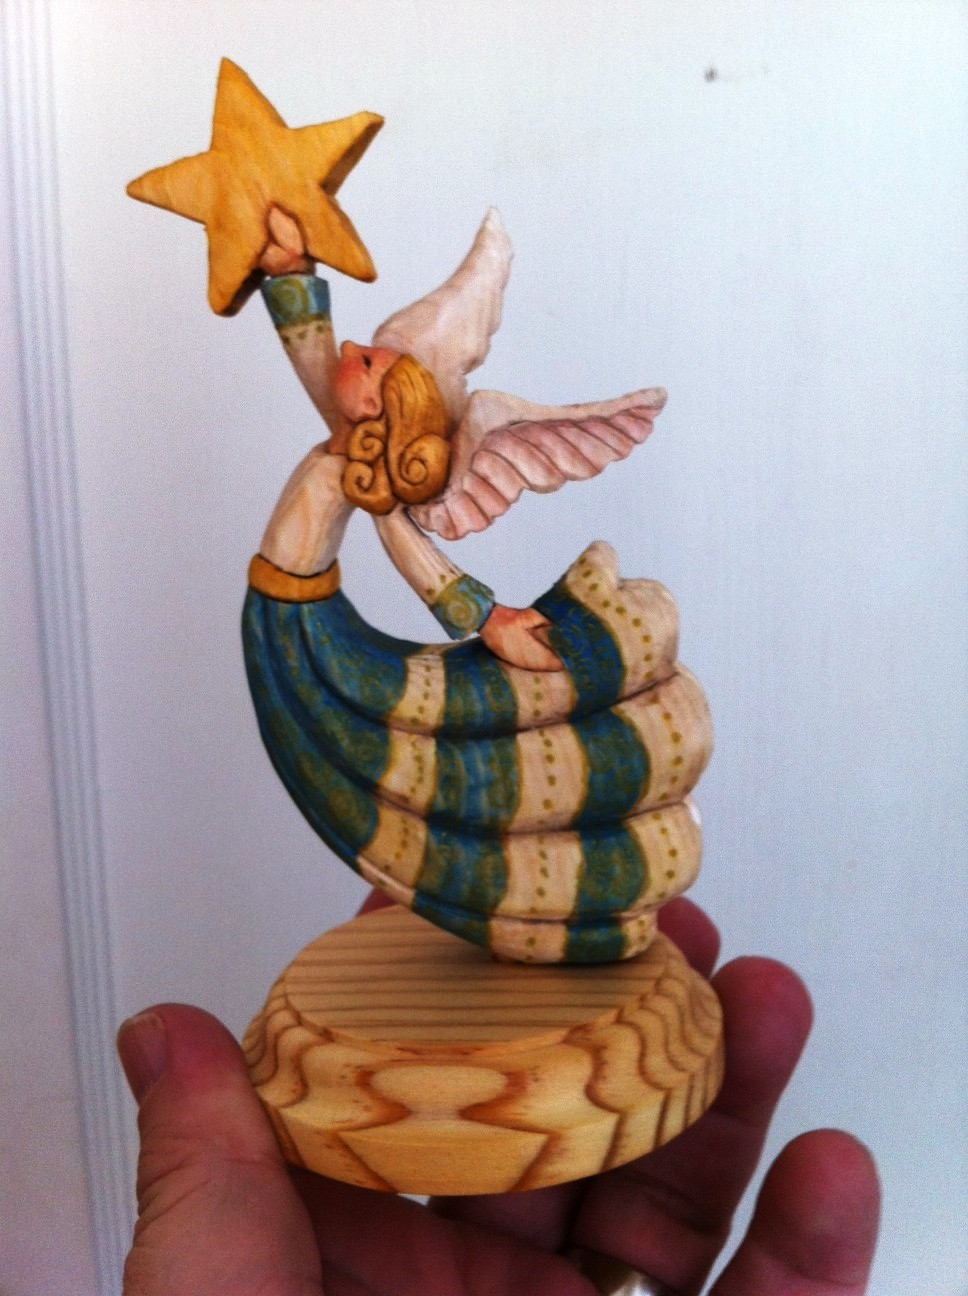 Mike pounders wood carving small stuff for christmas